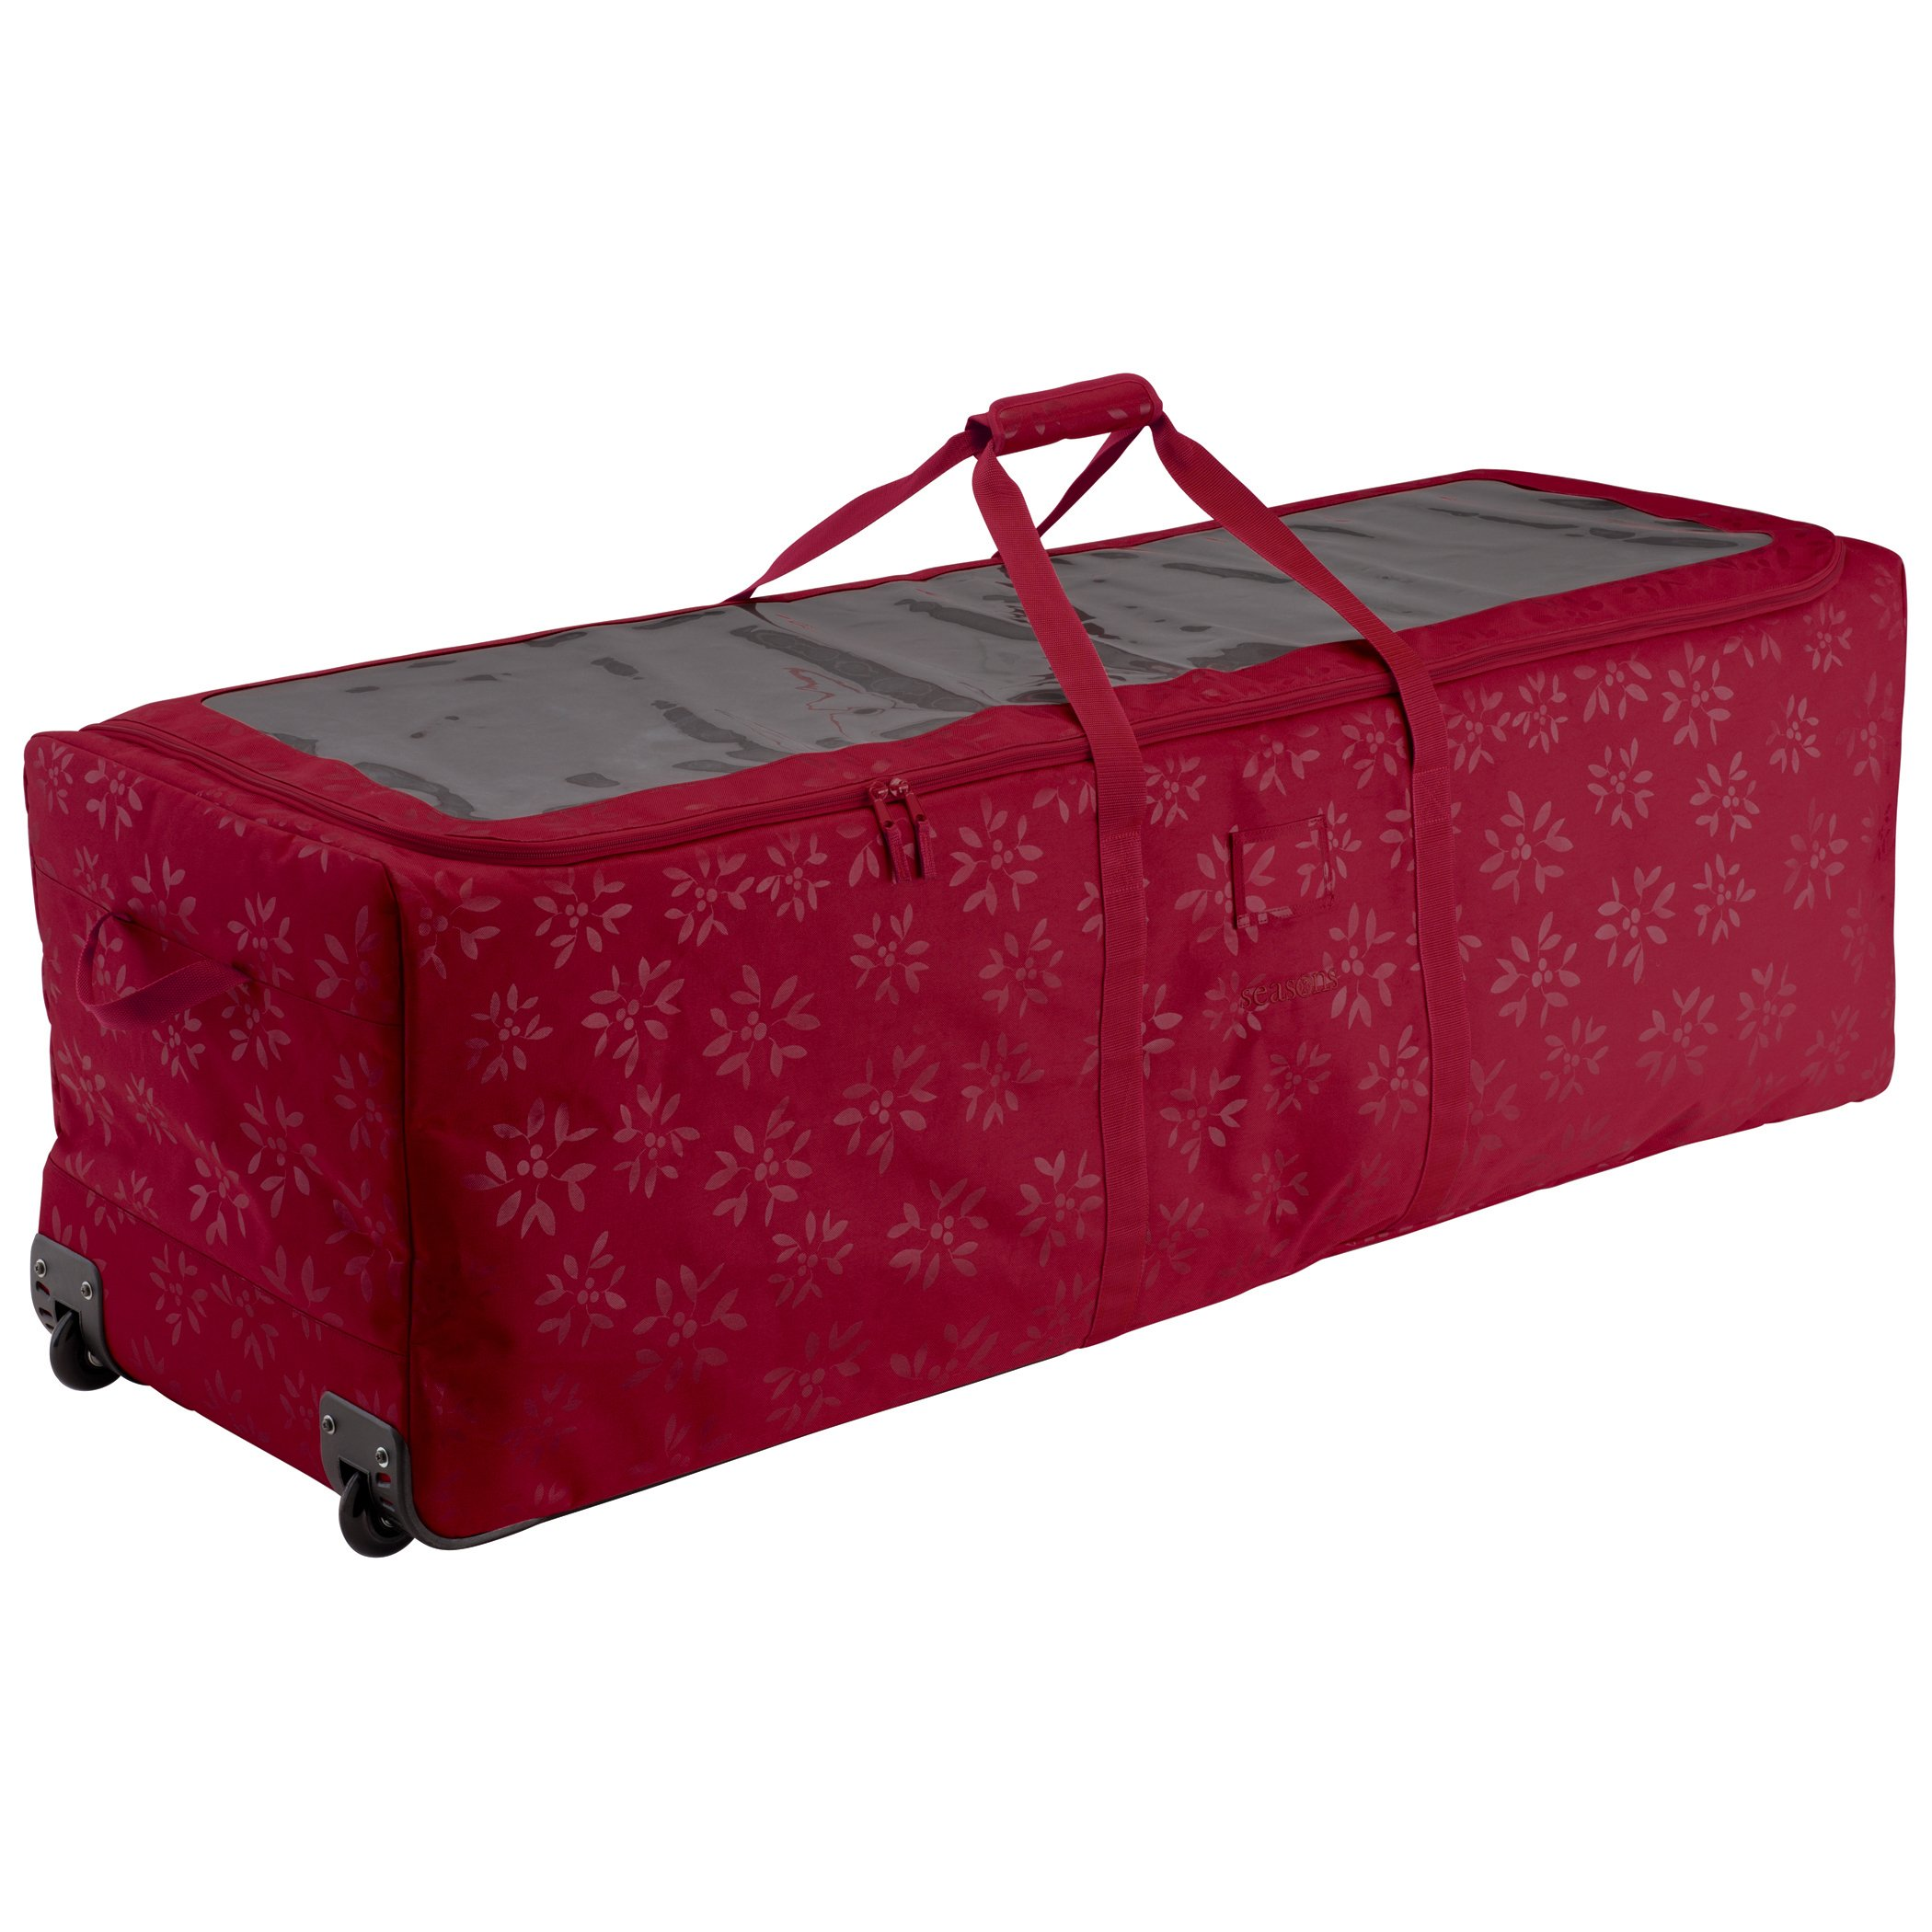 Classic Accessories Seasons Christmas Tree Rolling Storage Duffel by Classic Accessories